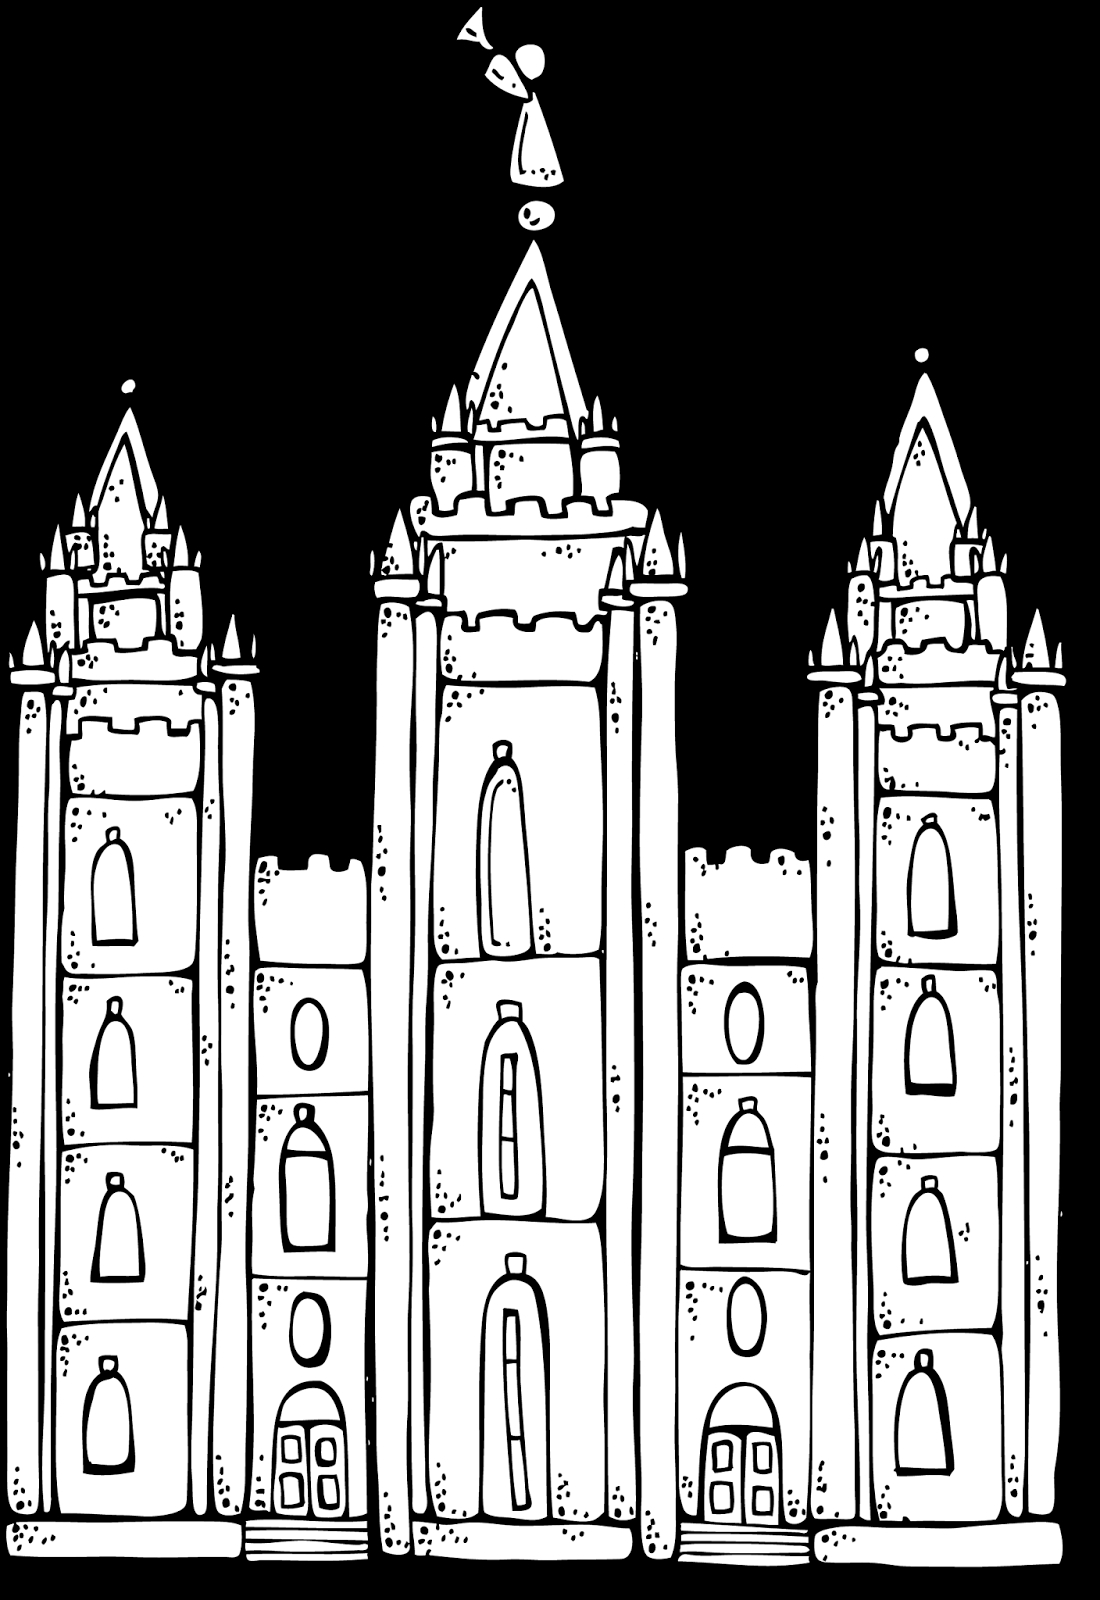 Lds Temple Coloring Pages - Melonheadz Lds Illustrating I Love to See the Temple